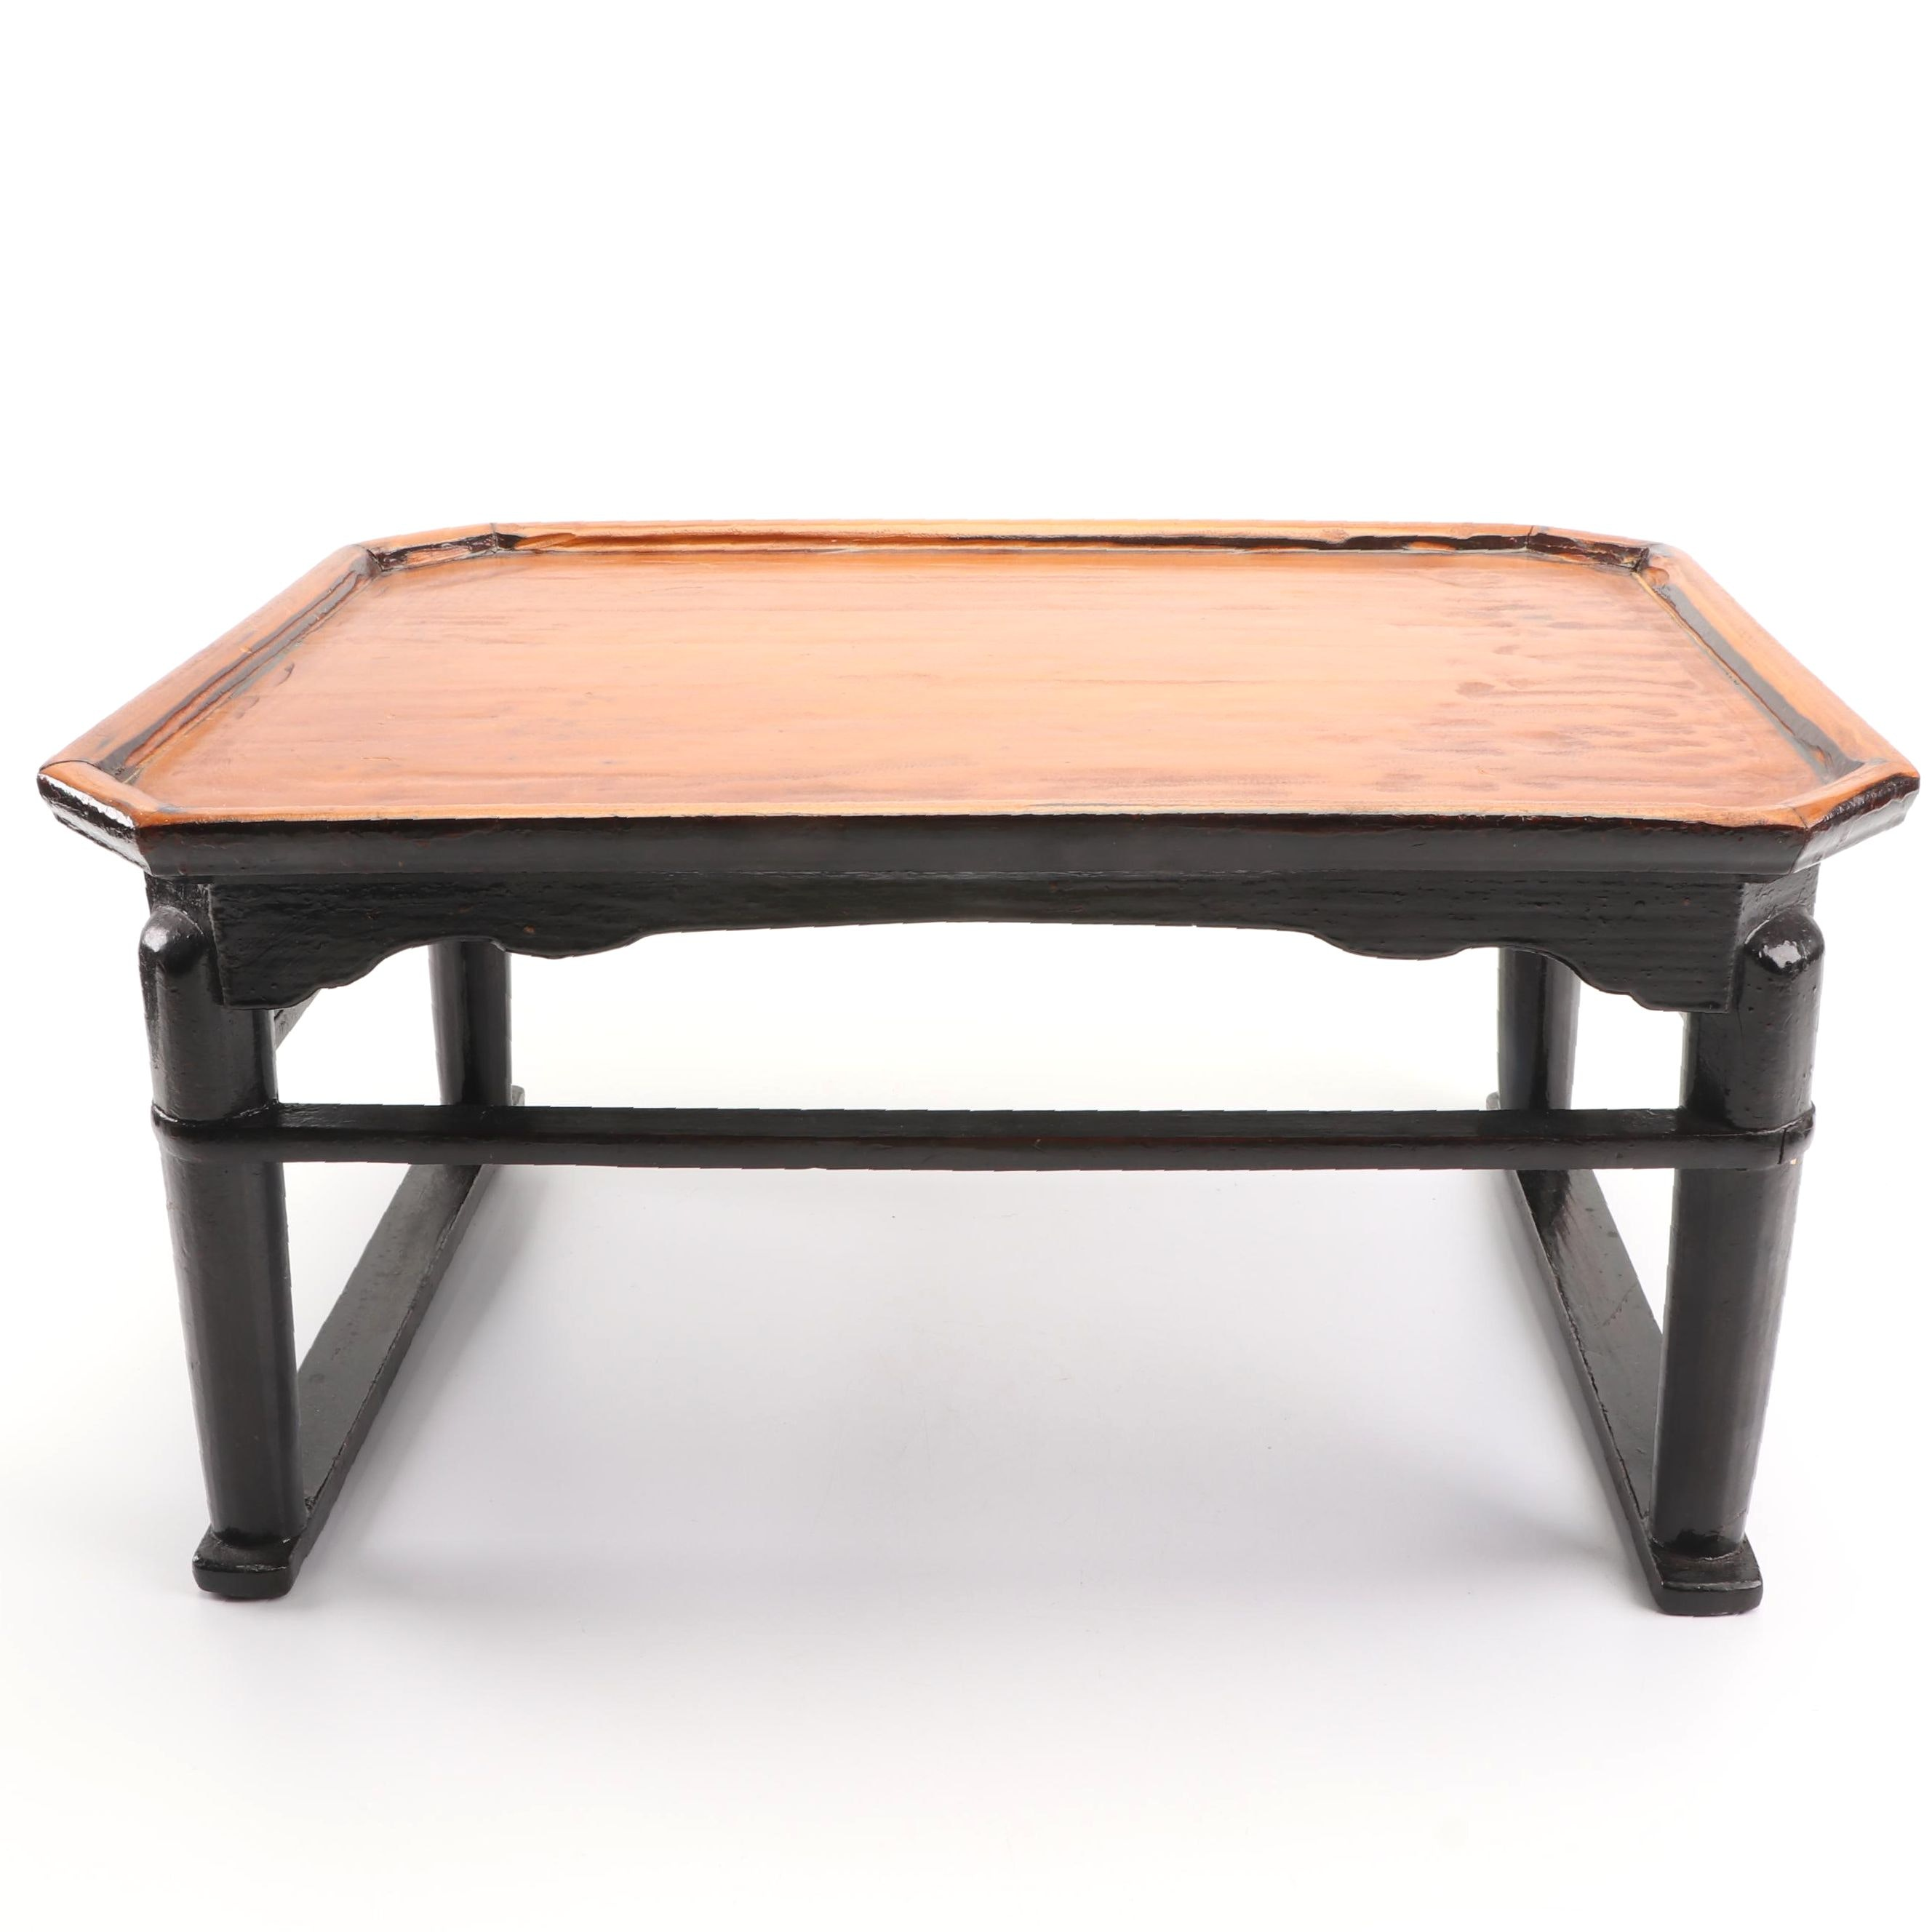 Antique Japanese Wooden Tea Tray